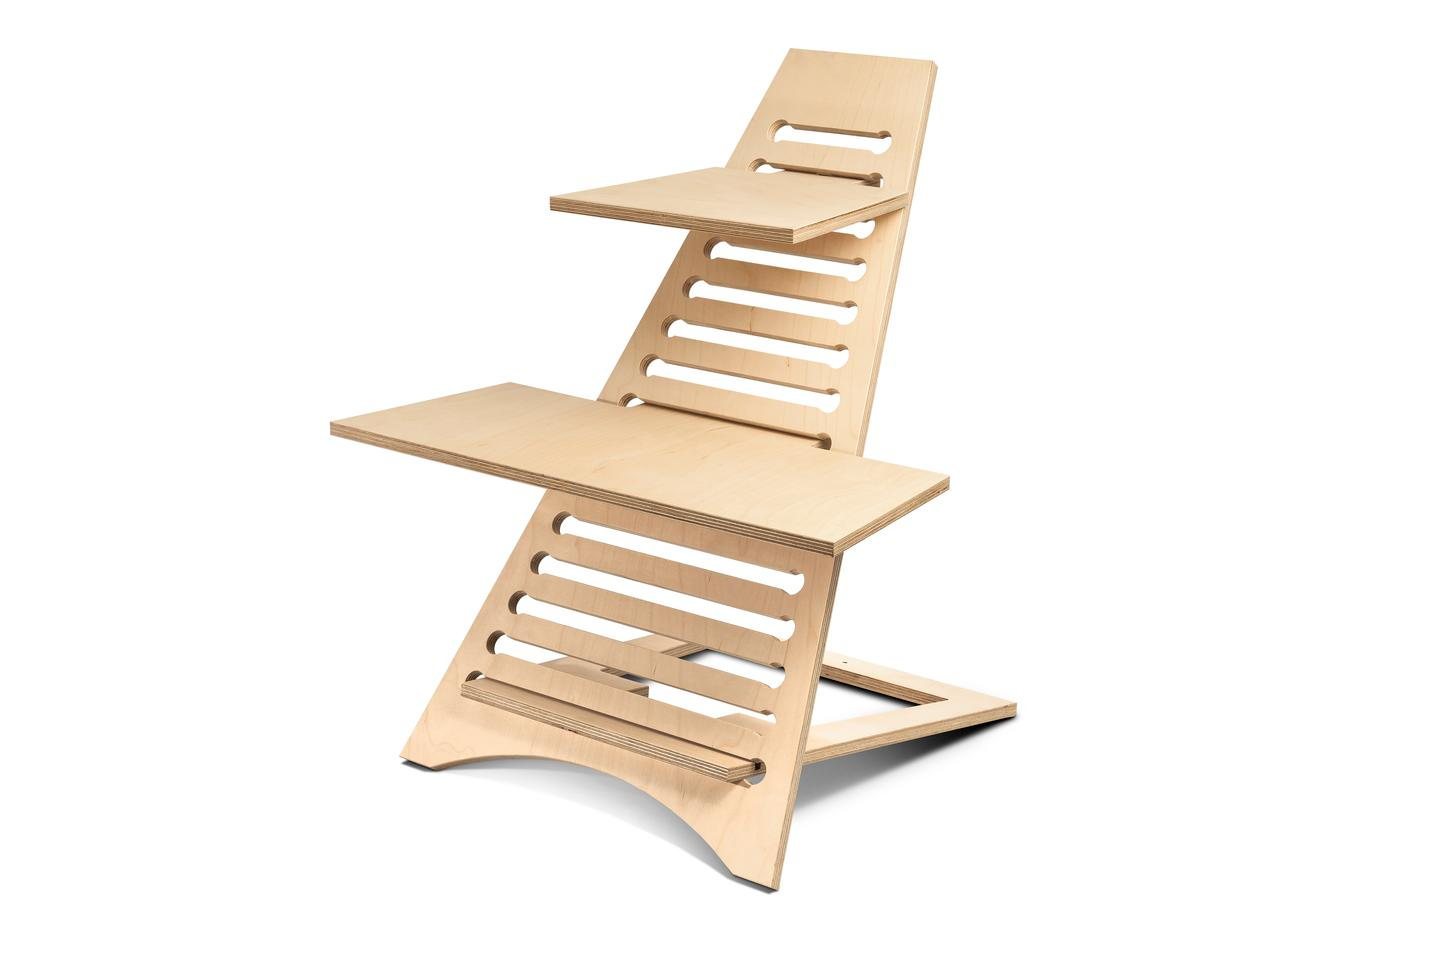 The stand slopes on an angle away from the user and slots naturally into the base creating a sturdy, stable structure for weight bearing items such as laptops, keyboards, and a mouse